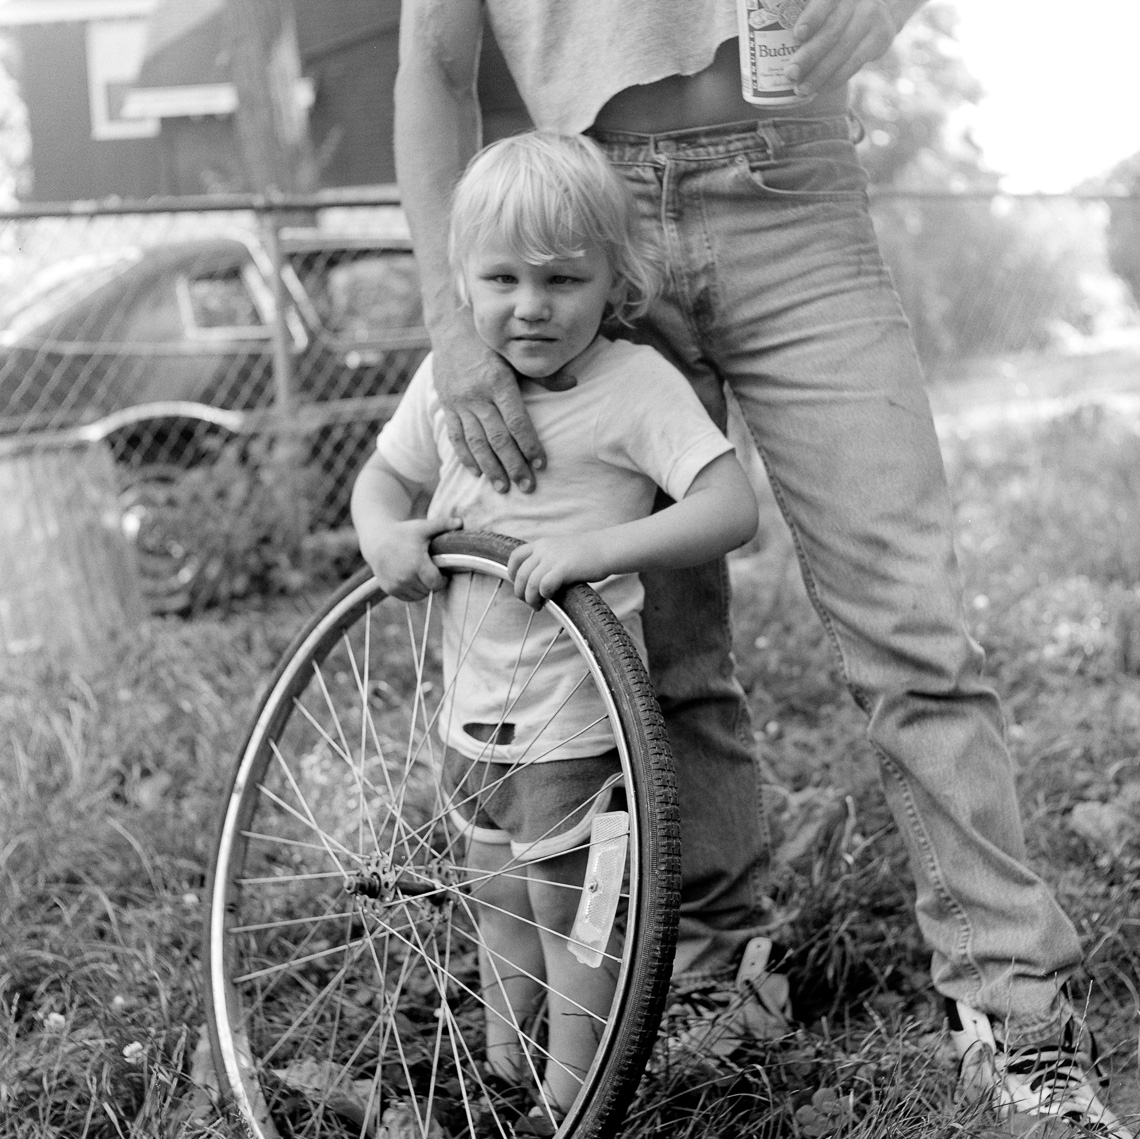 black-white-street-child-wheel